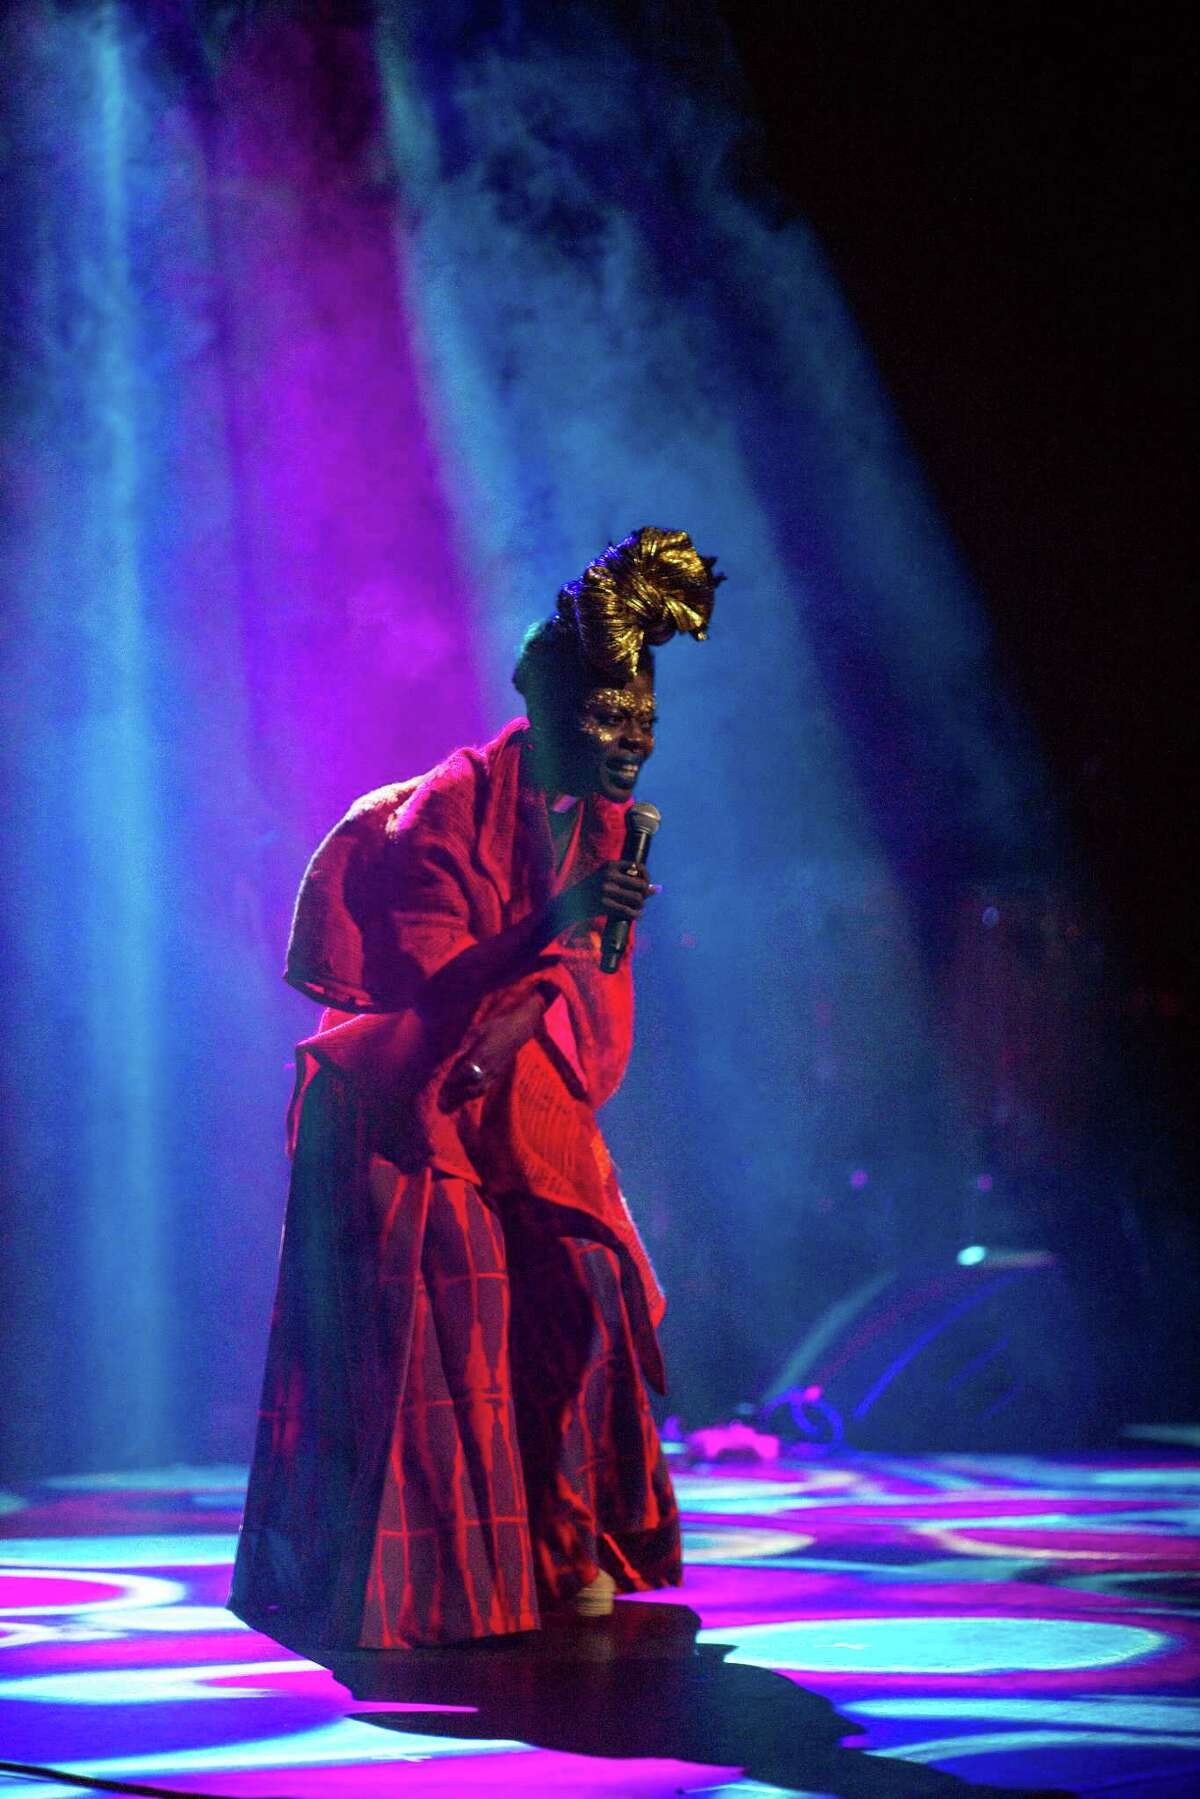 Jojo Abot, from Ghana, performs during the fourth annual Africa Now! concert at Apollo Theater in the Harlem neighborhood of New York, March 26, 2016. AbotOs performance, one of the eveningOs four acts, featured music that drew as much from reggae, electronics and alternative R&B as from direct African sources. (Emon Hassan/The New York Times) ORG XMIT: XNYT37